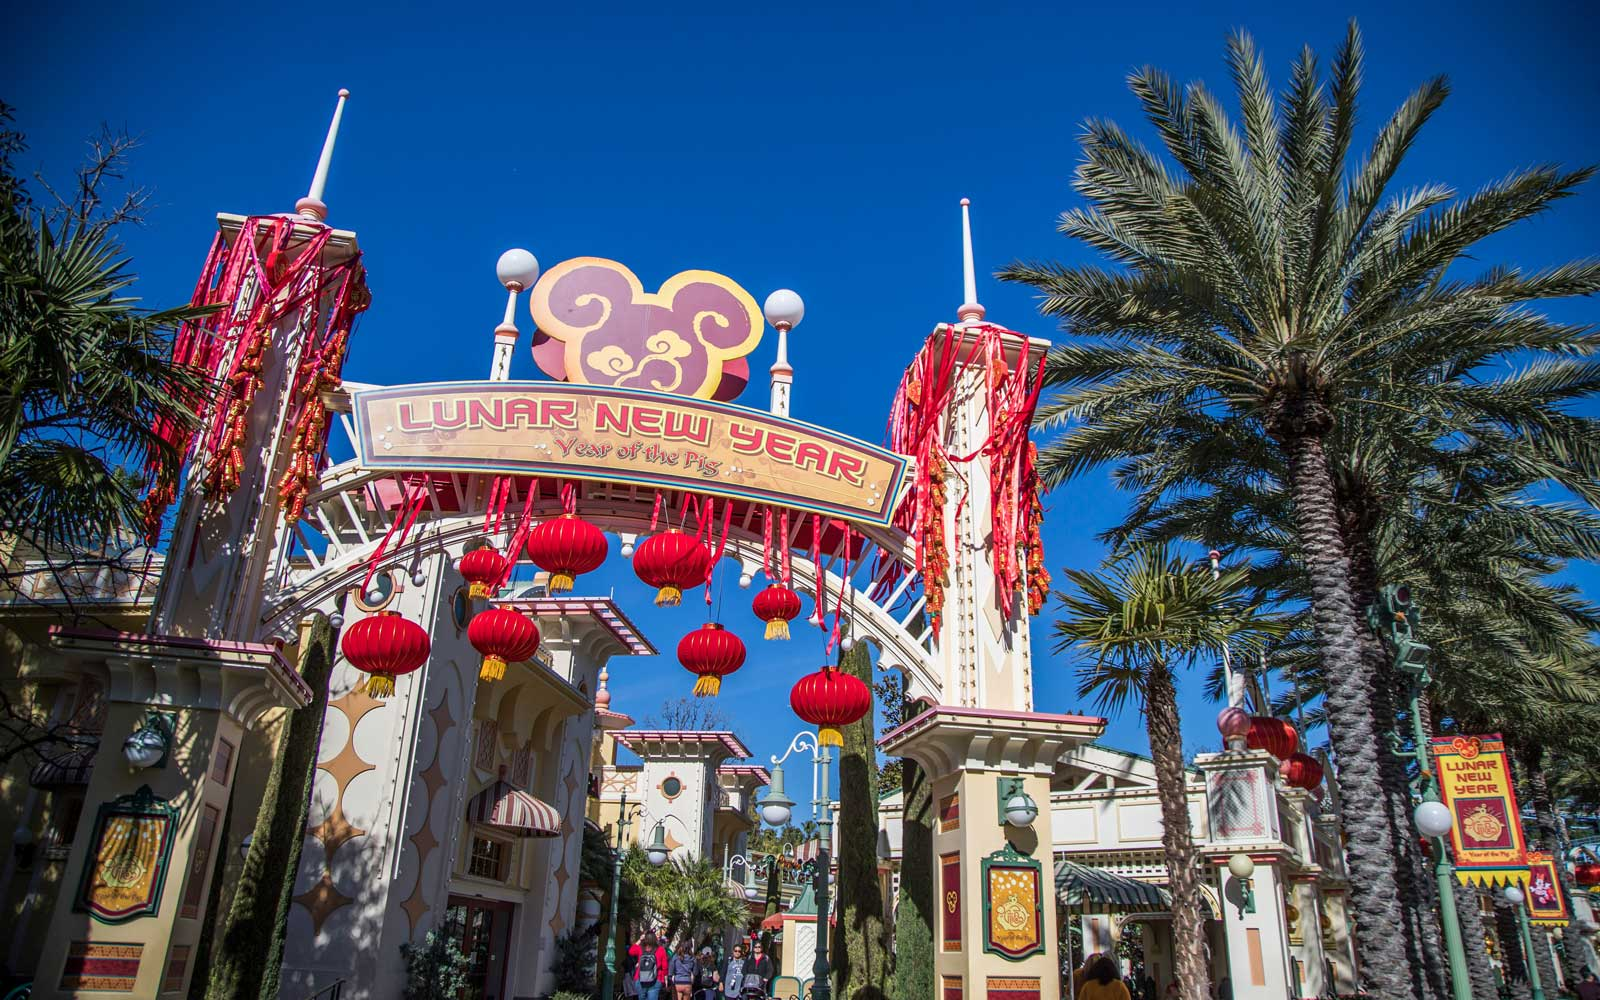 Why Lunar New Year Is One of the Best Times to Visit Disneyland and Universal